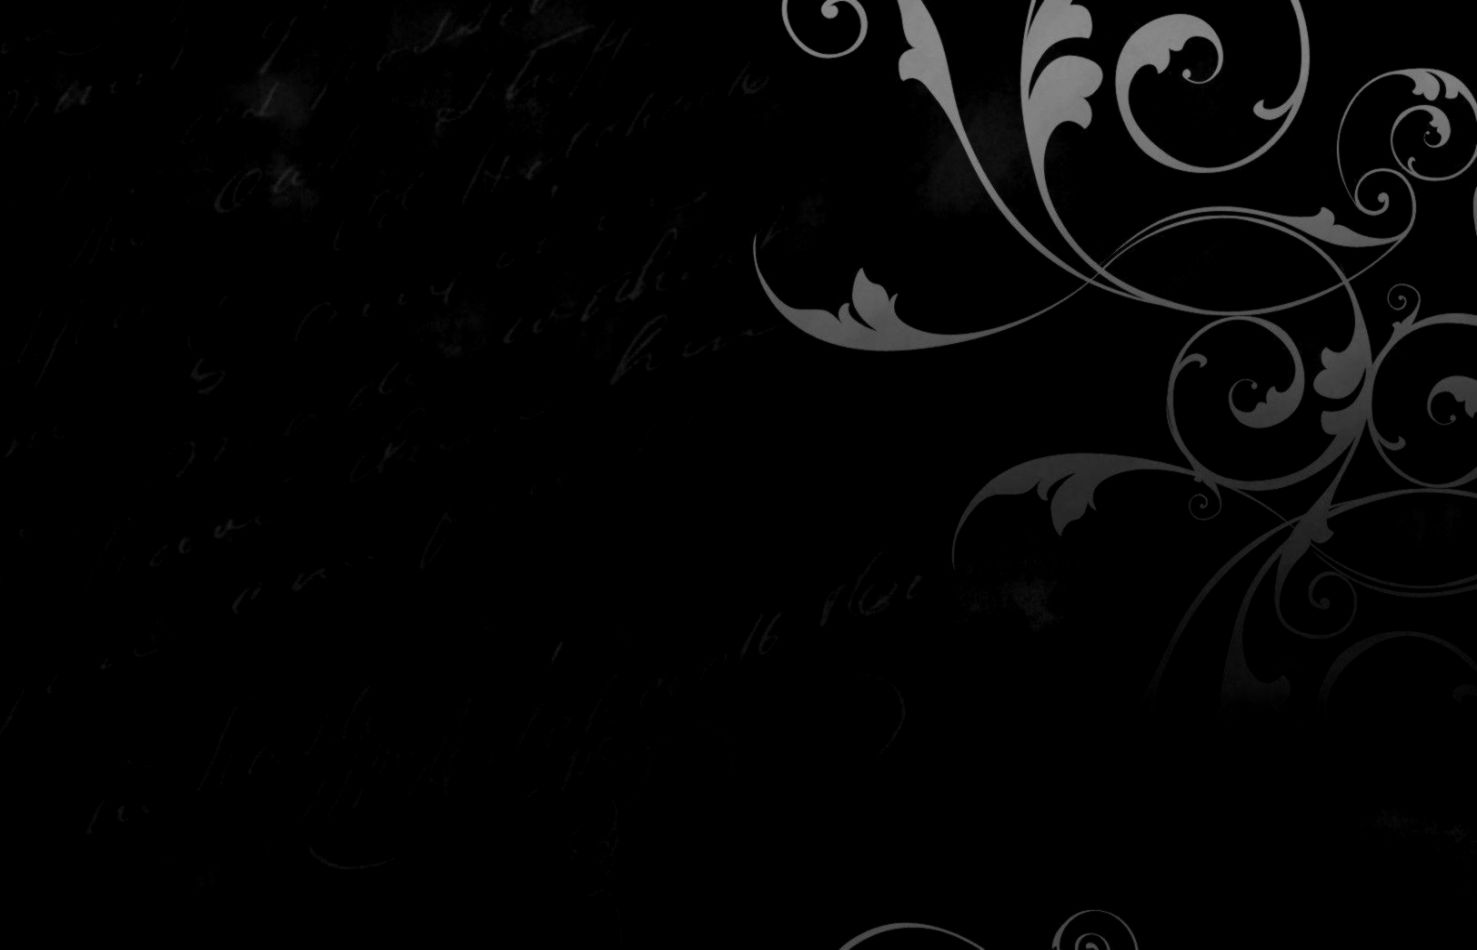 Black Abstract Wallpaper Hd | Silver Wallpapers